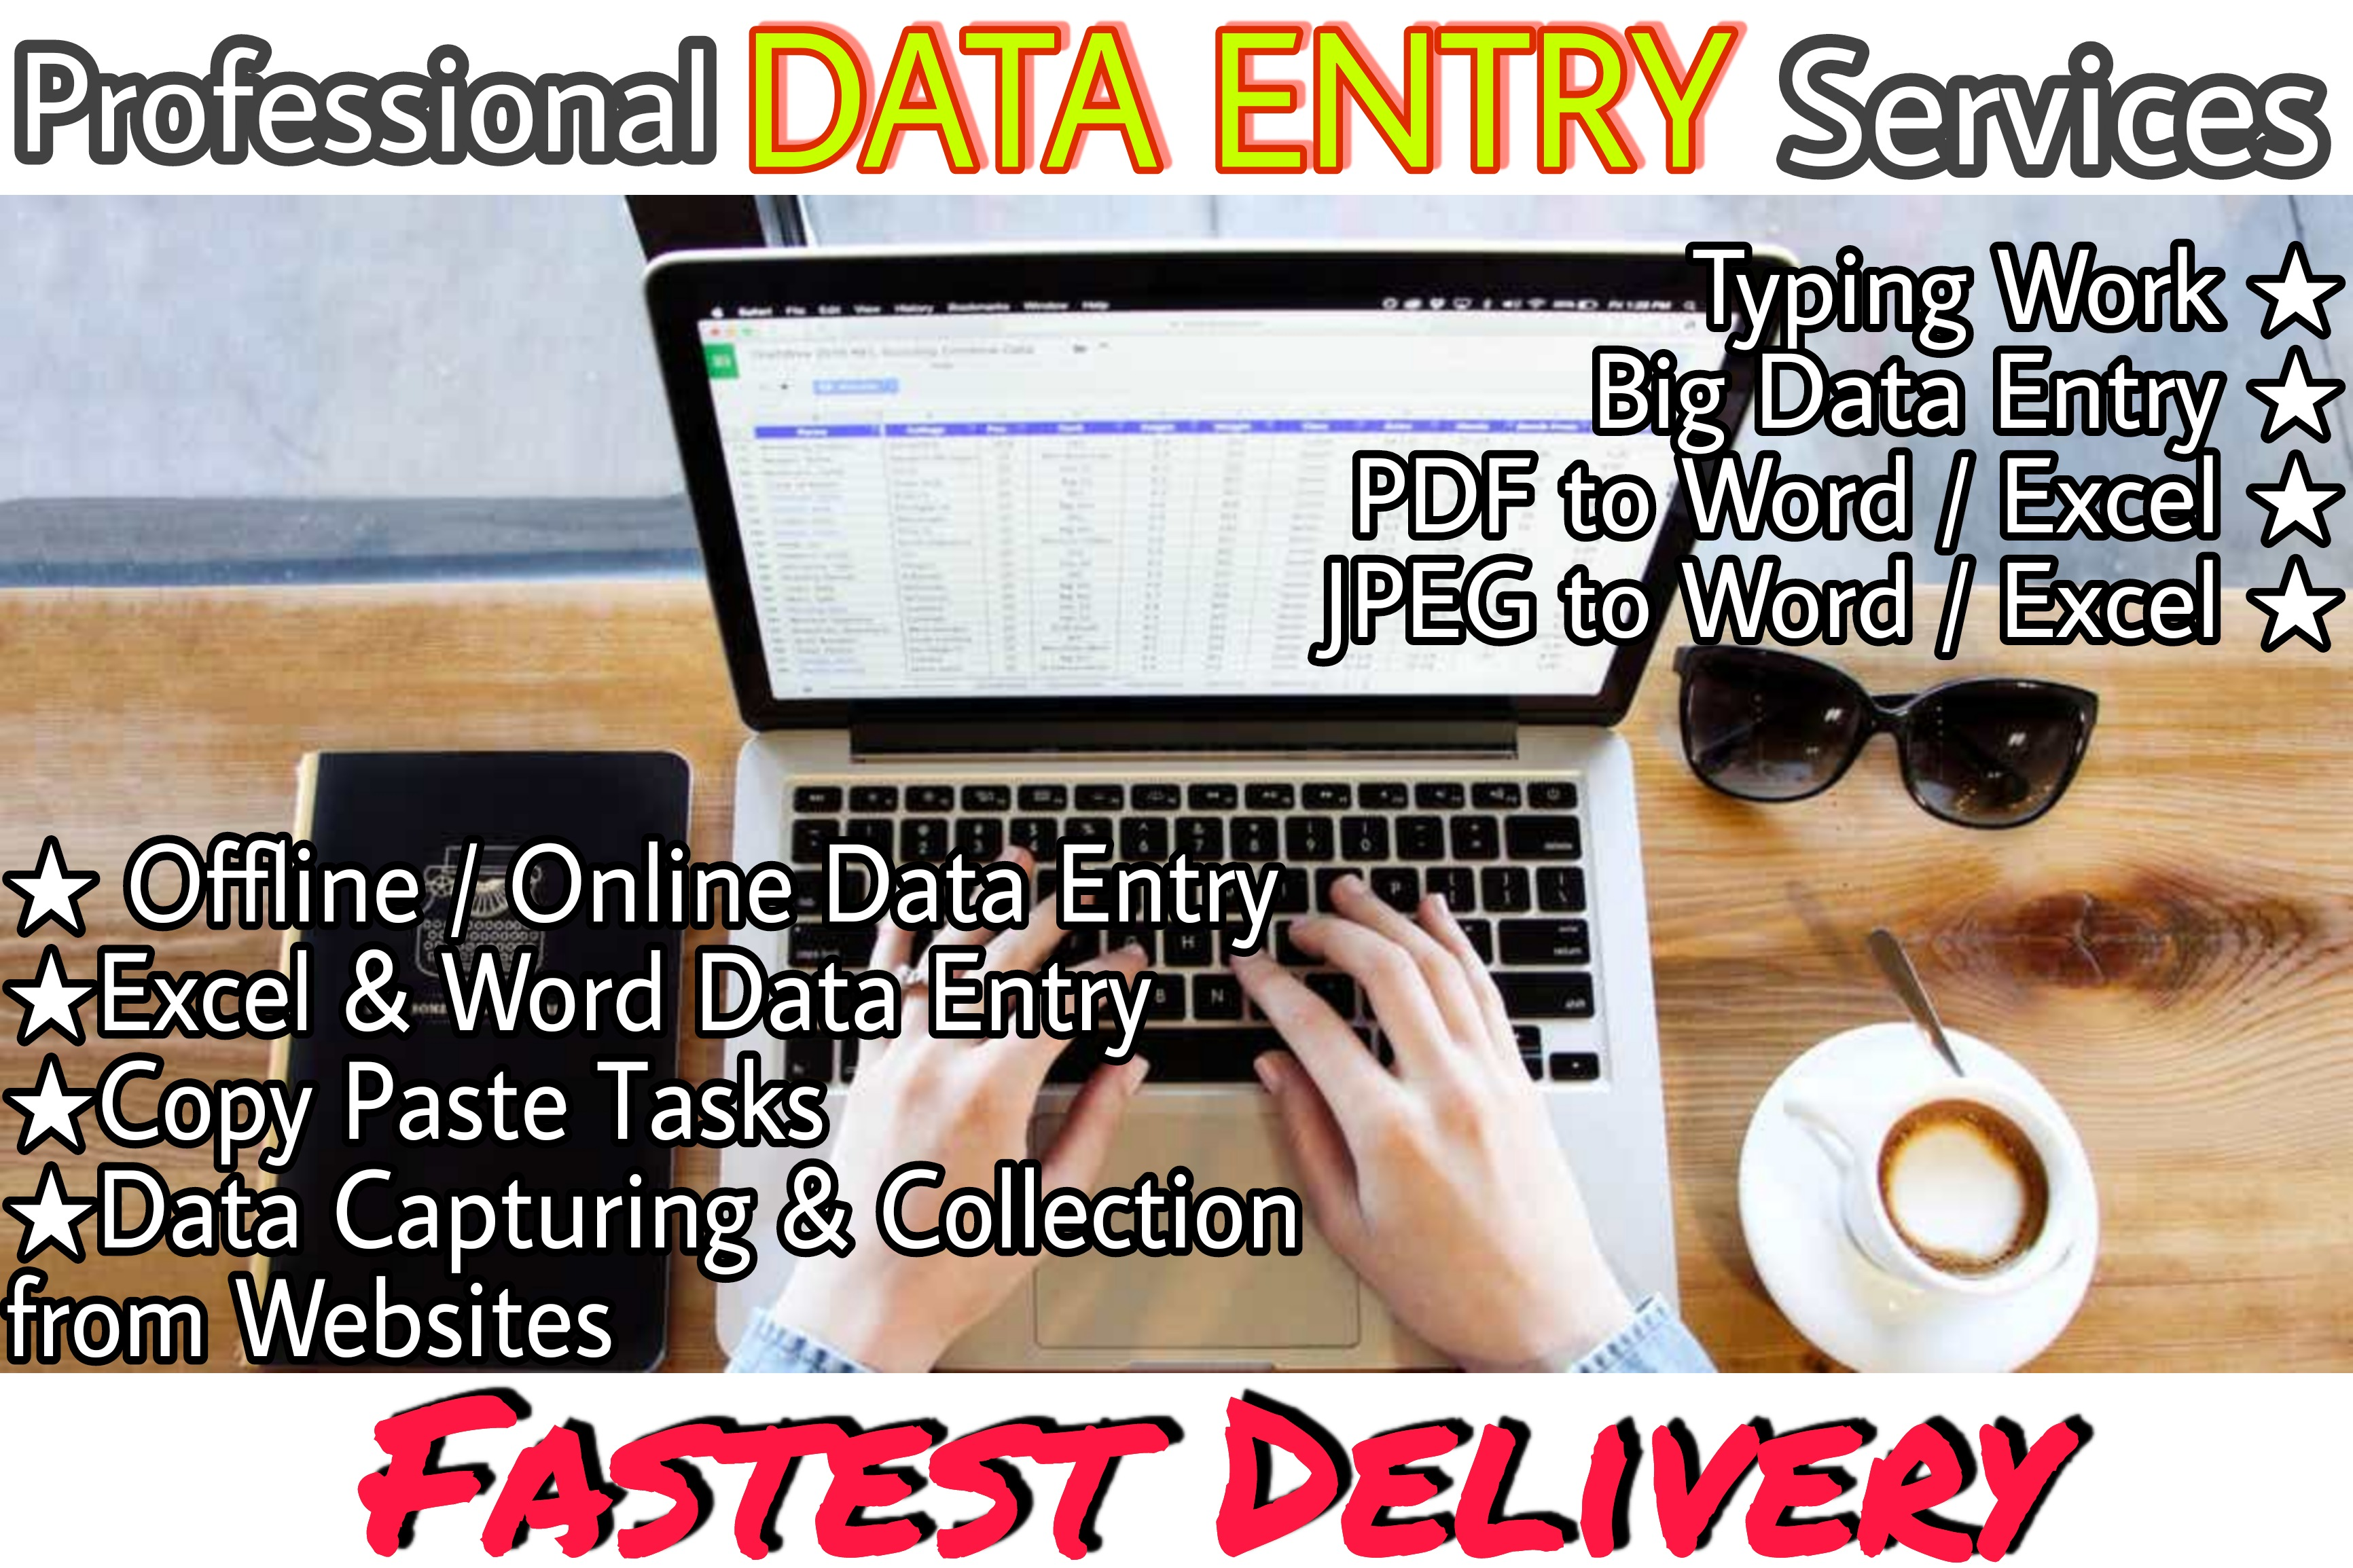 Data Entry Service at low cost.